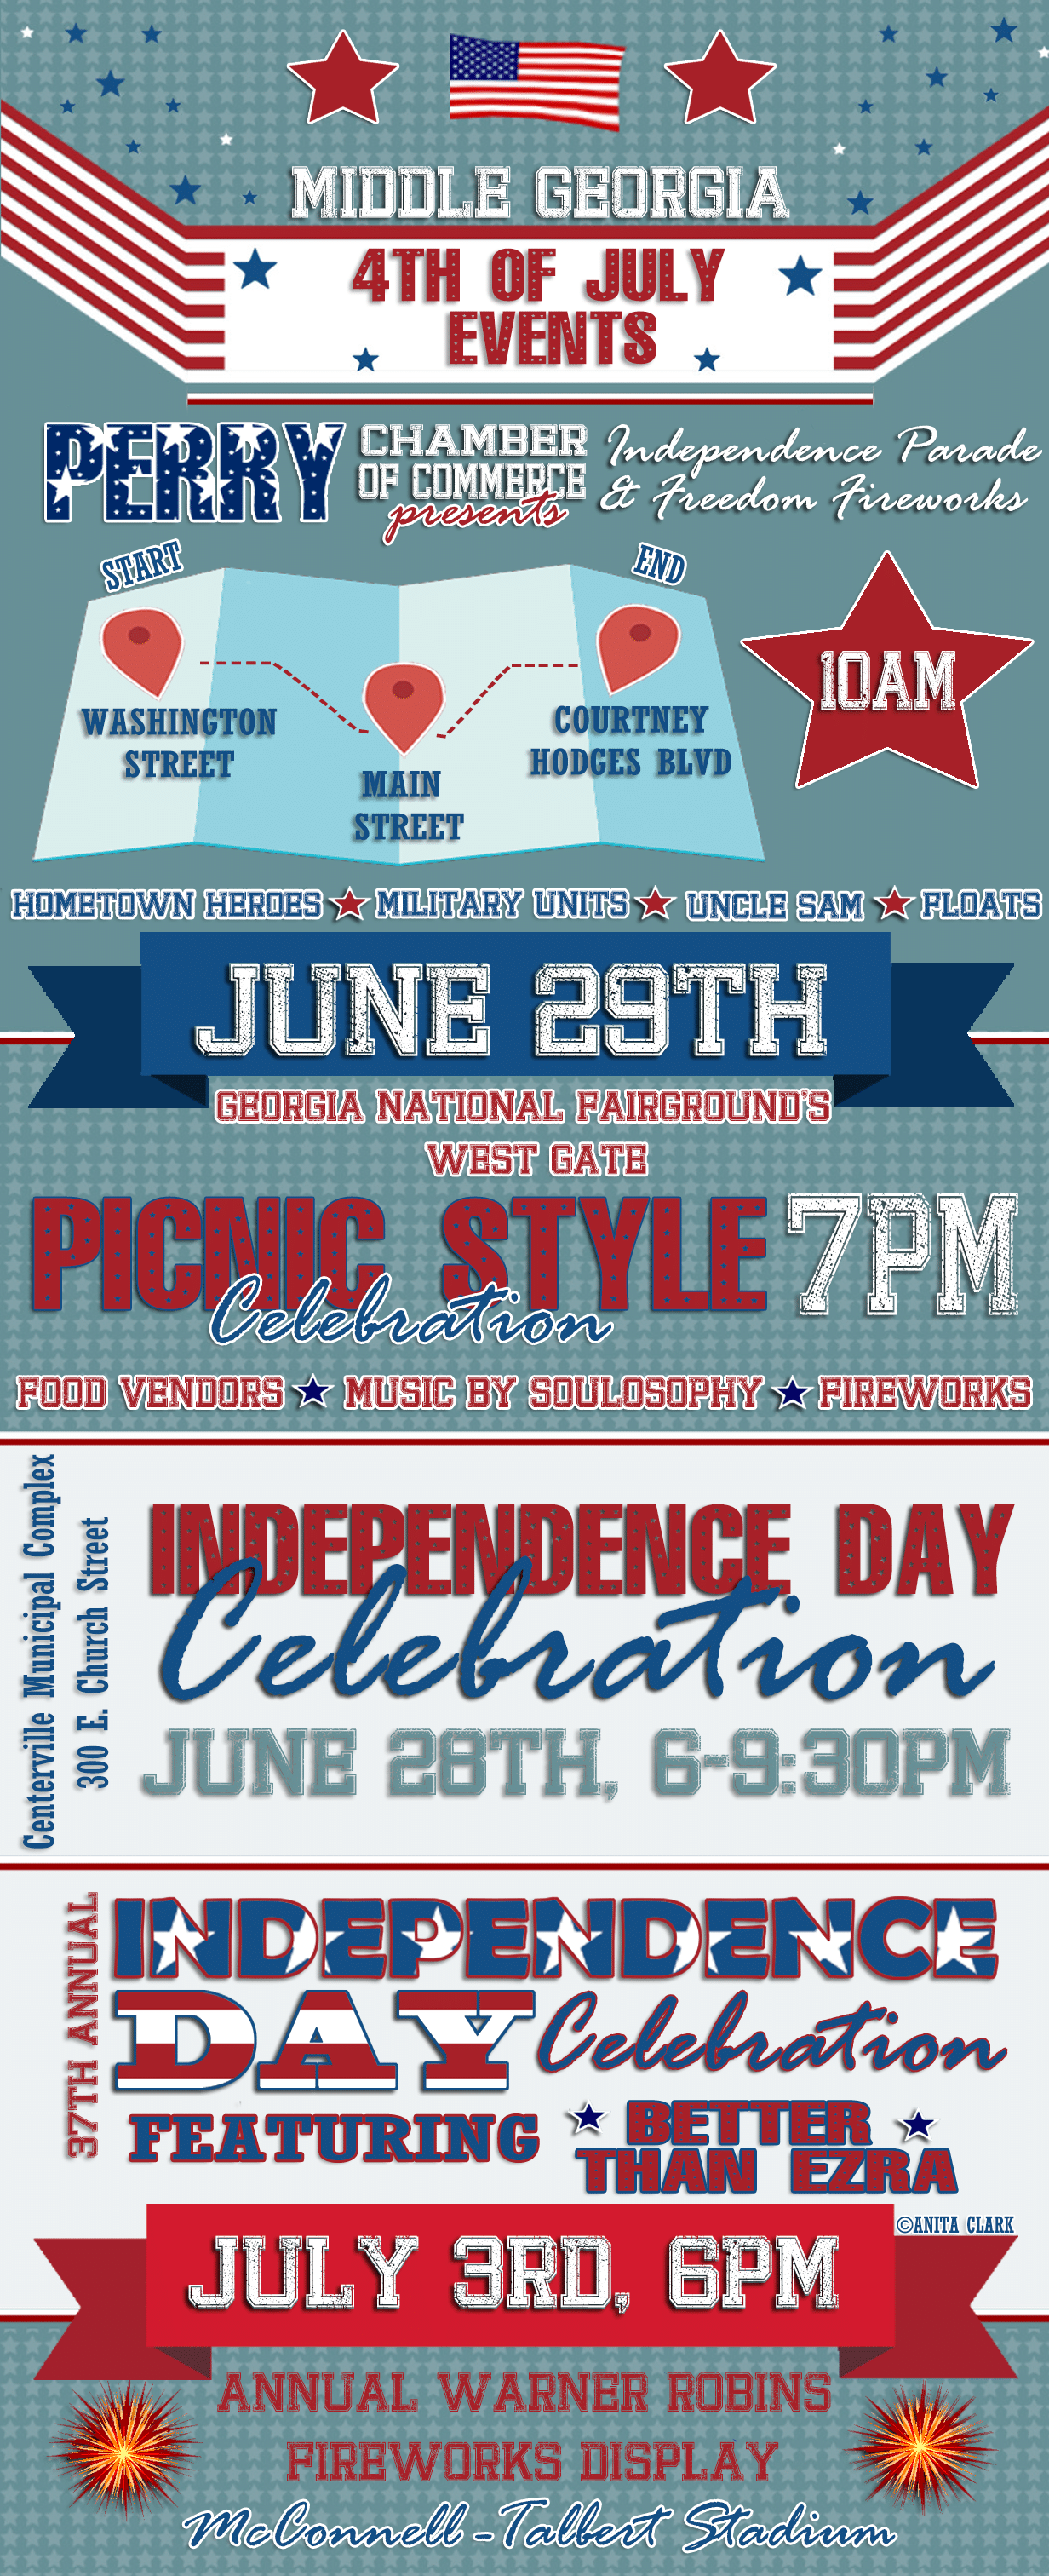 Warner Robins 4th of July Events 2019